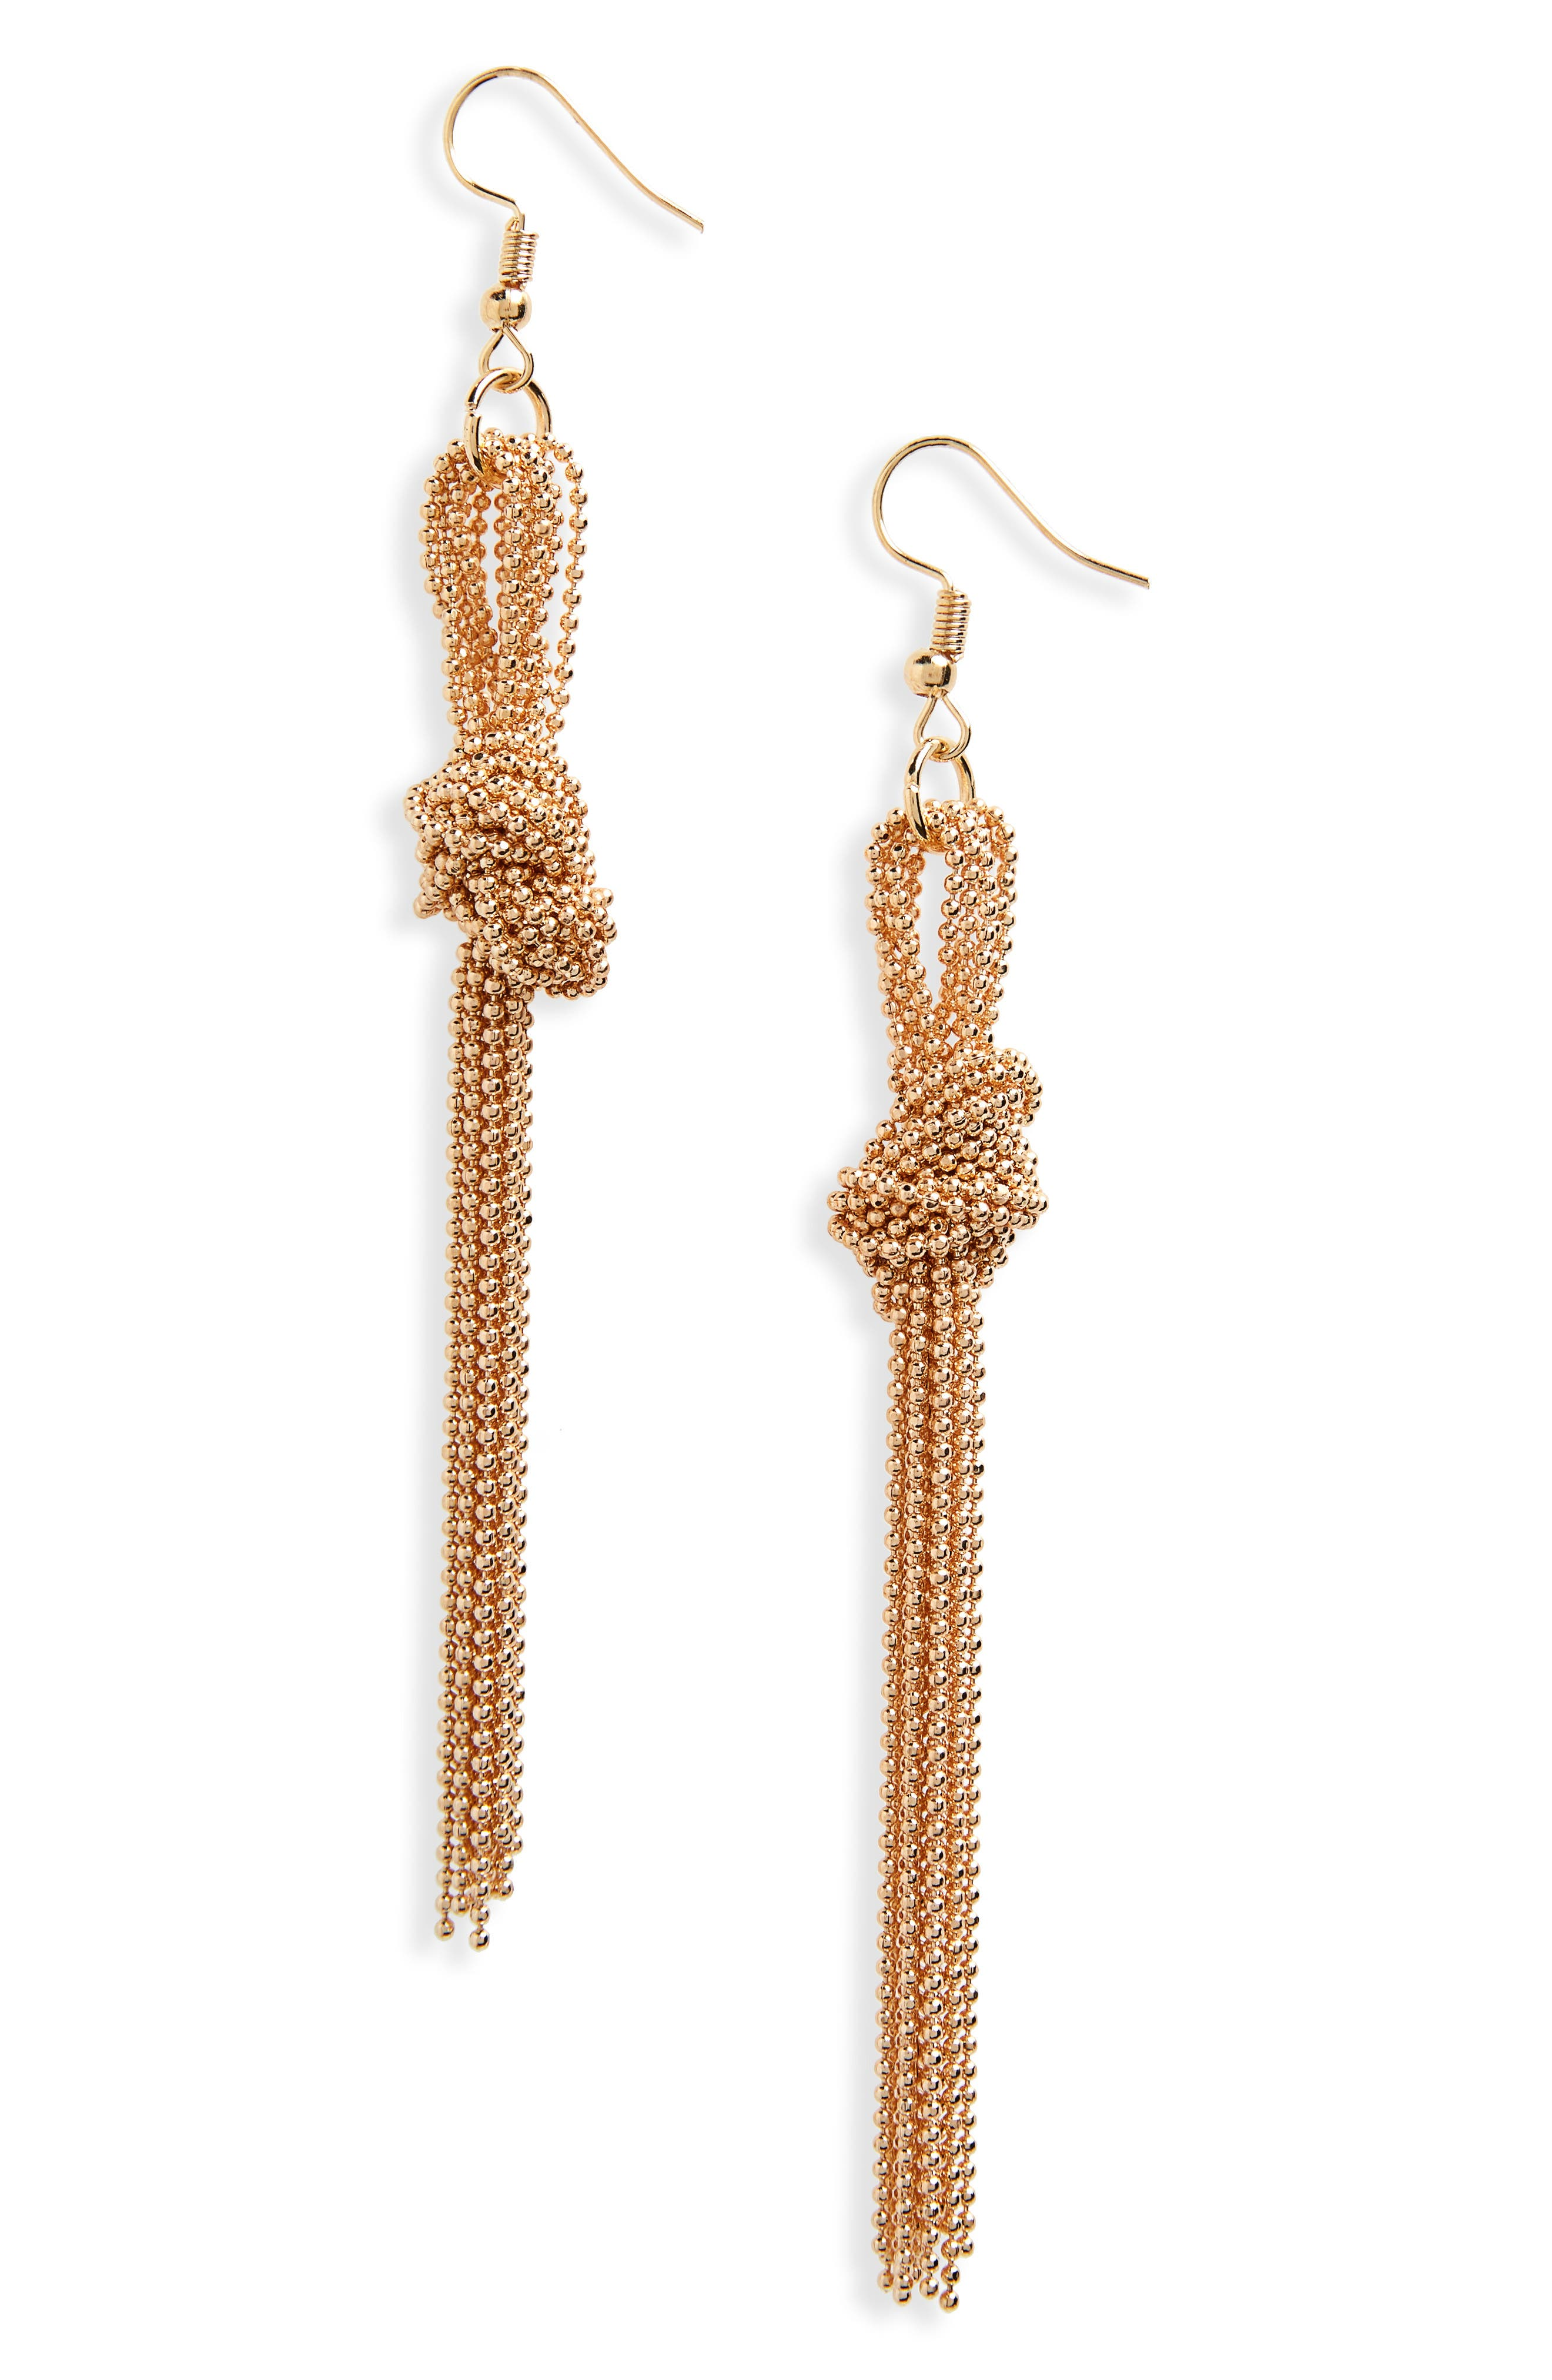 Knotted Bead Chain Linear Earrings,                         Main,                         color, GOLD